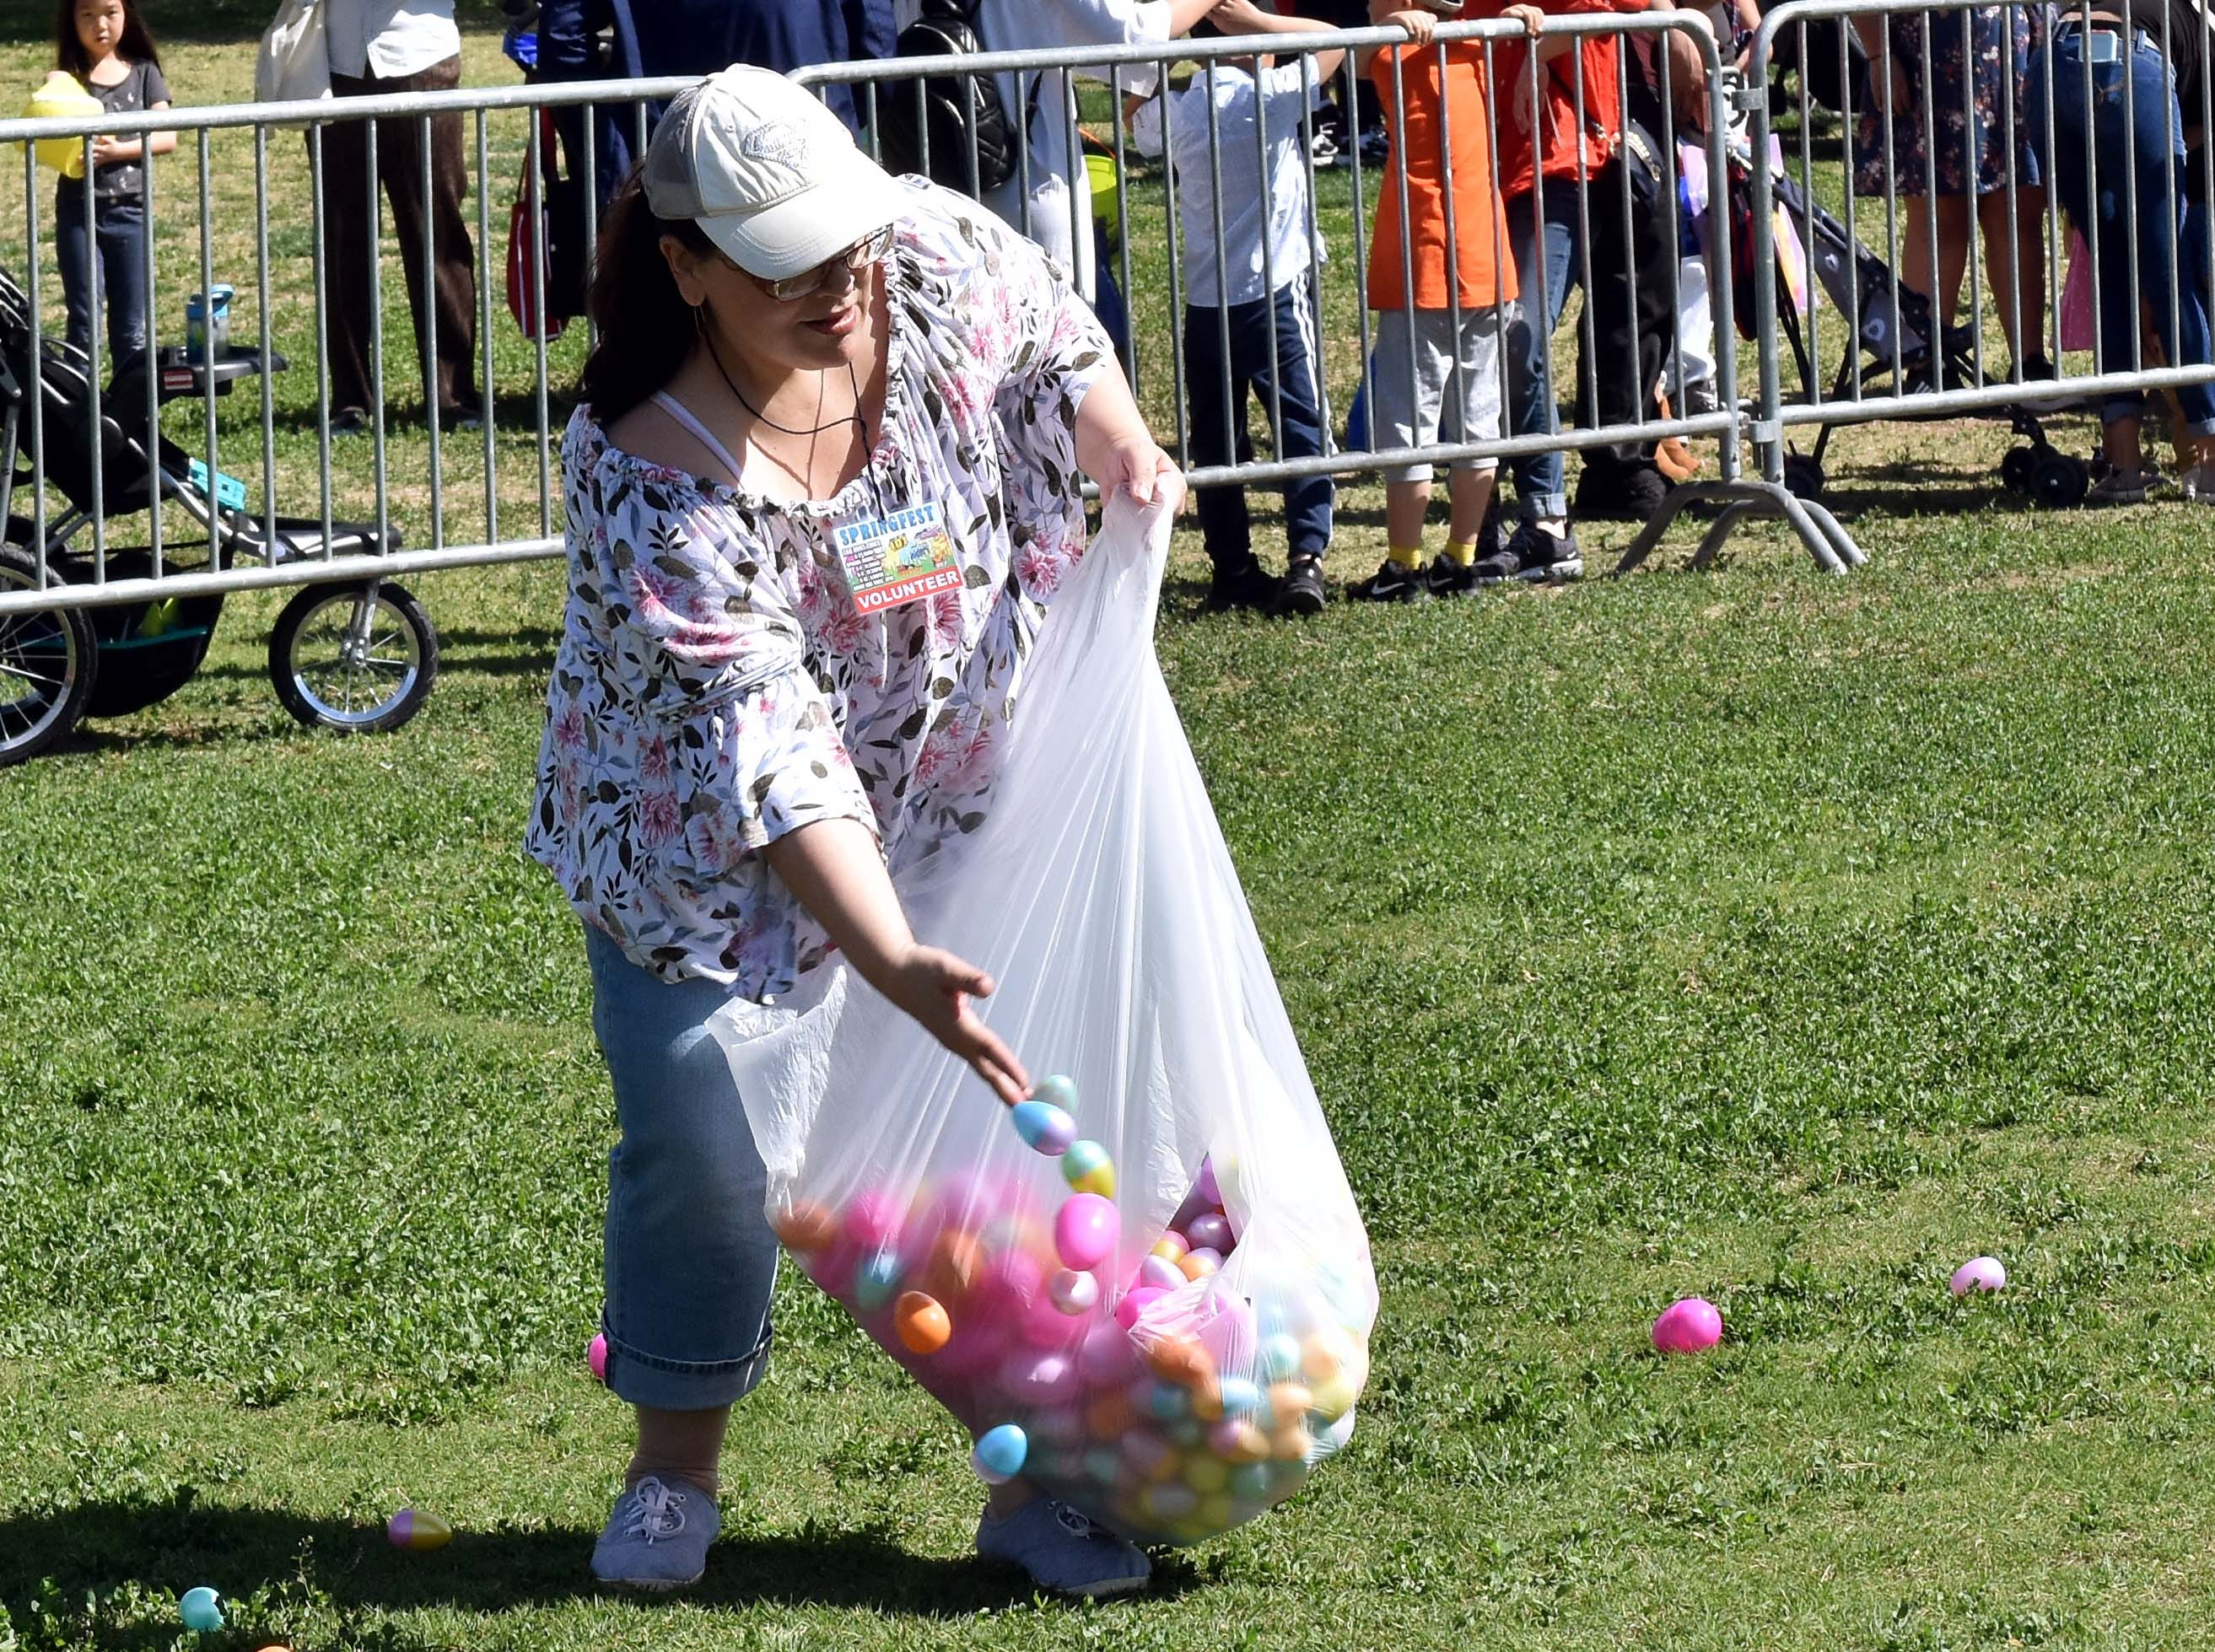 Cindy Quillin scatters eggs for what she says is her last time after 10 years as a volunteer. This year's SpringFest was held at Young Park on Saturday, April 20, 2019.